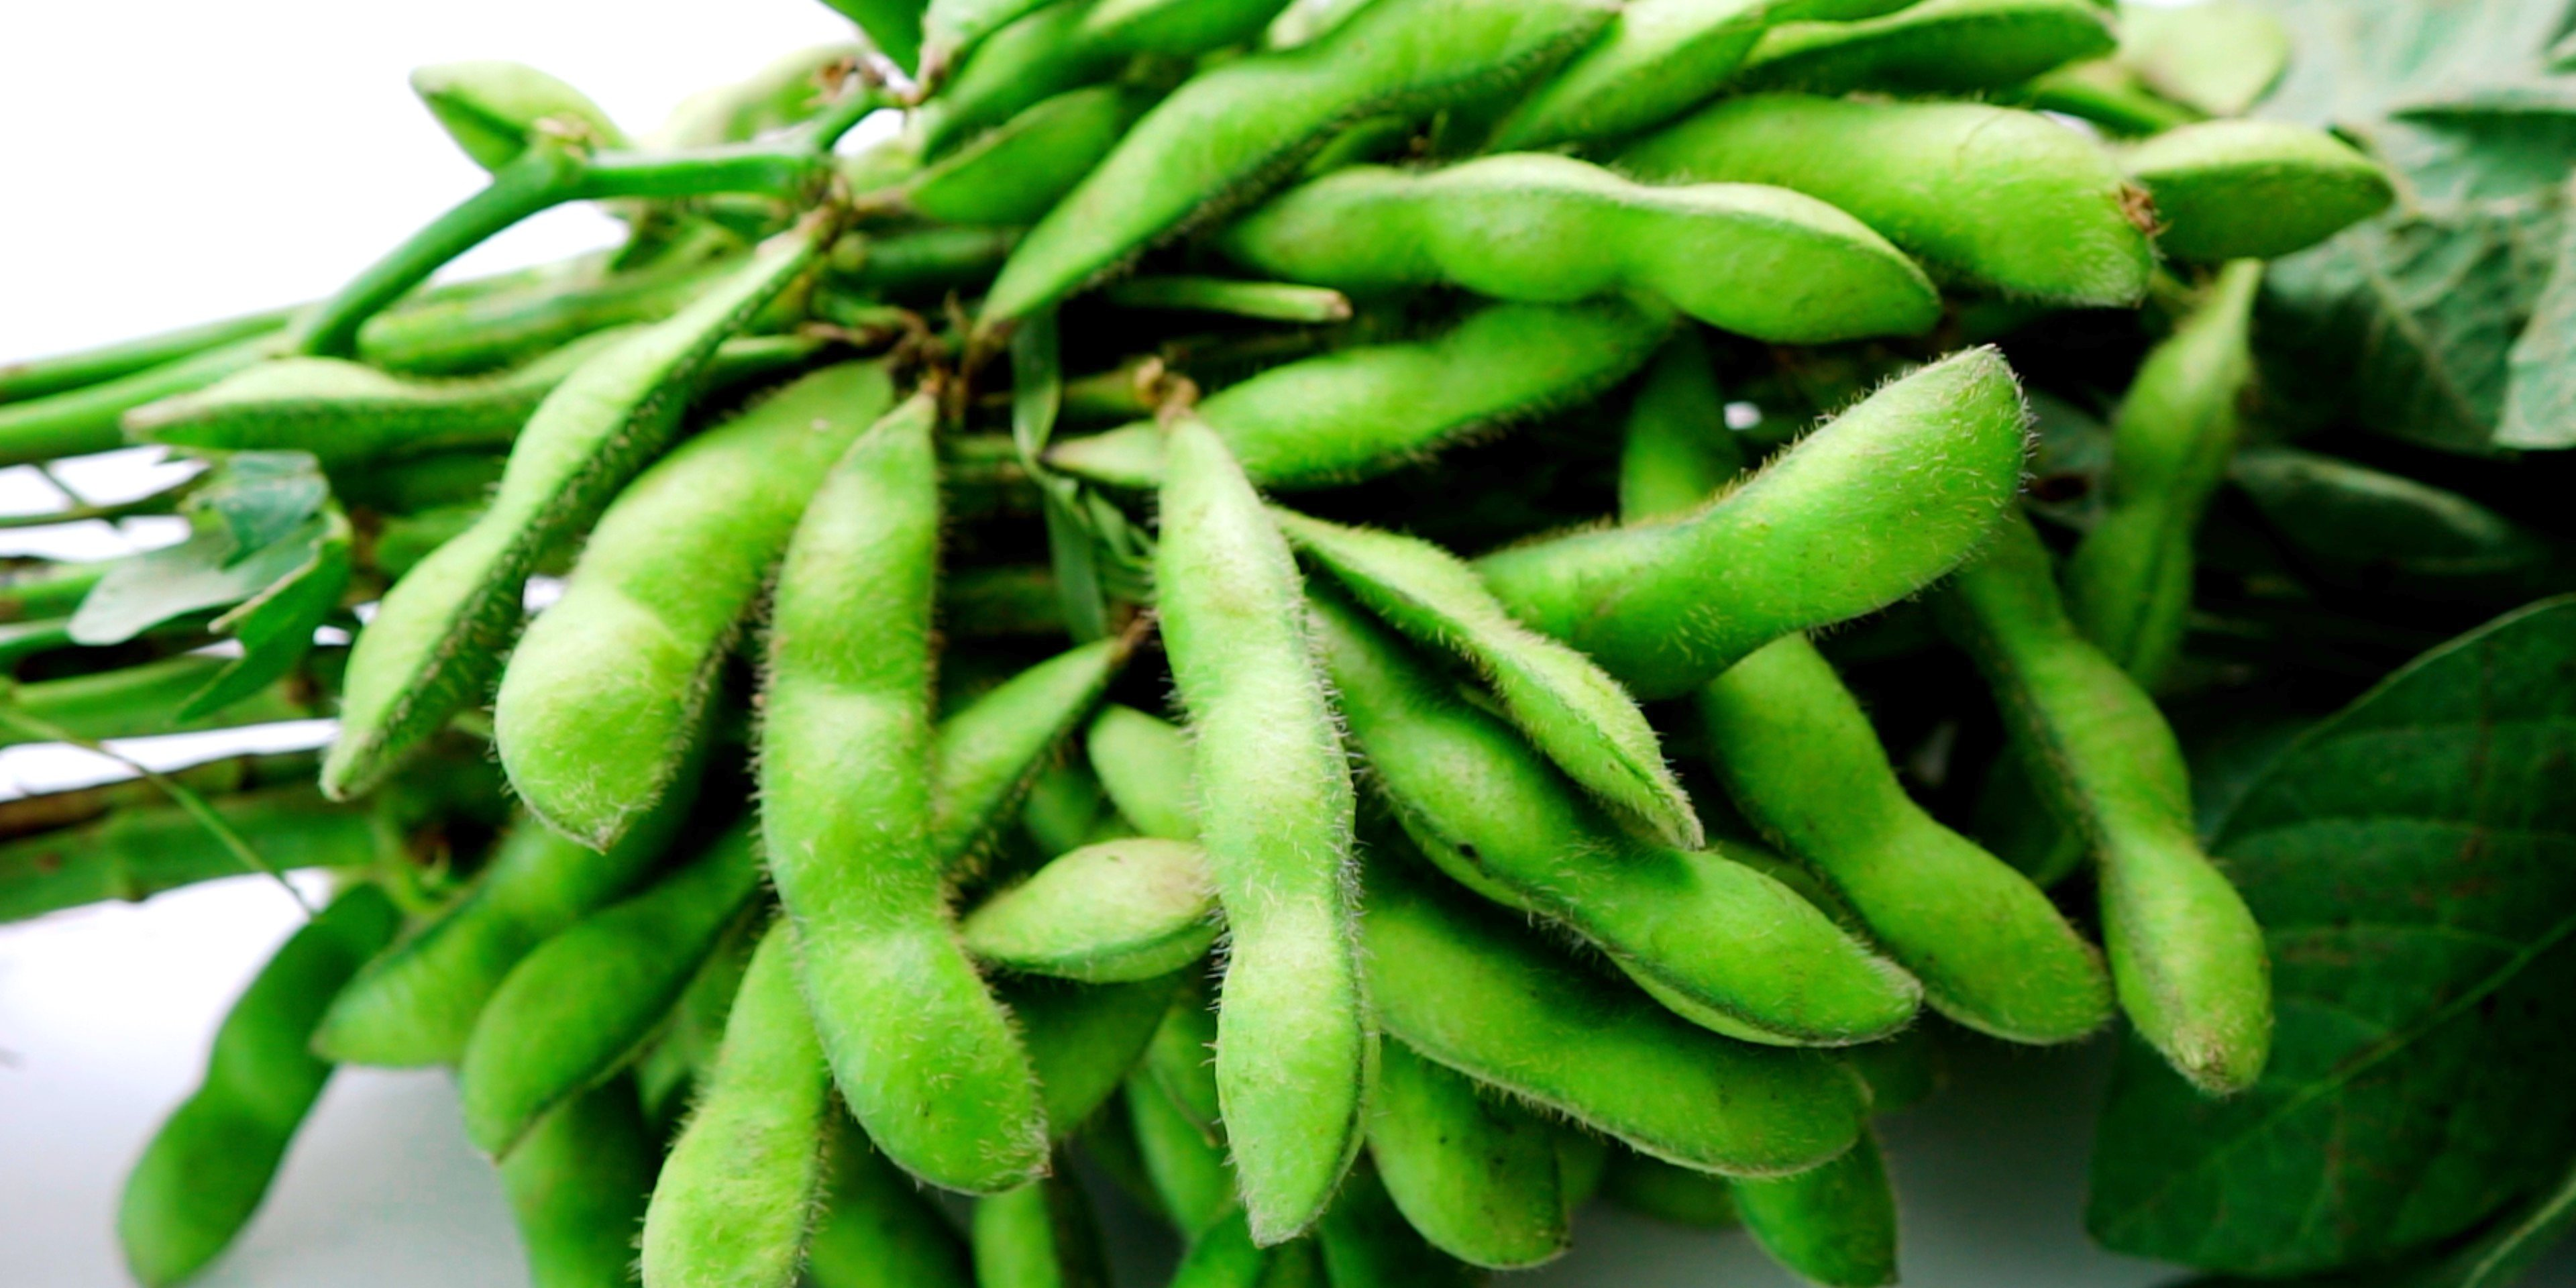 Edamame or green soybeans still on their stalks.